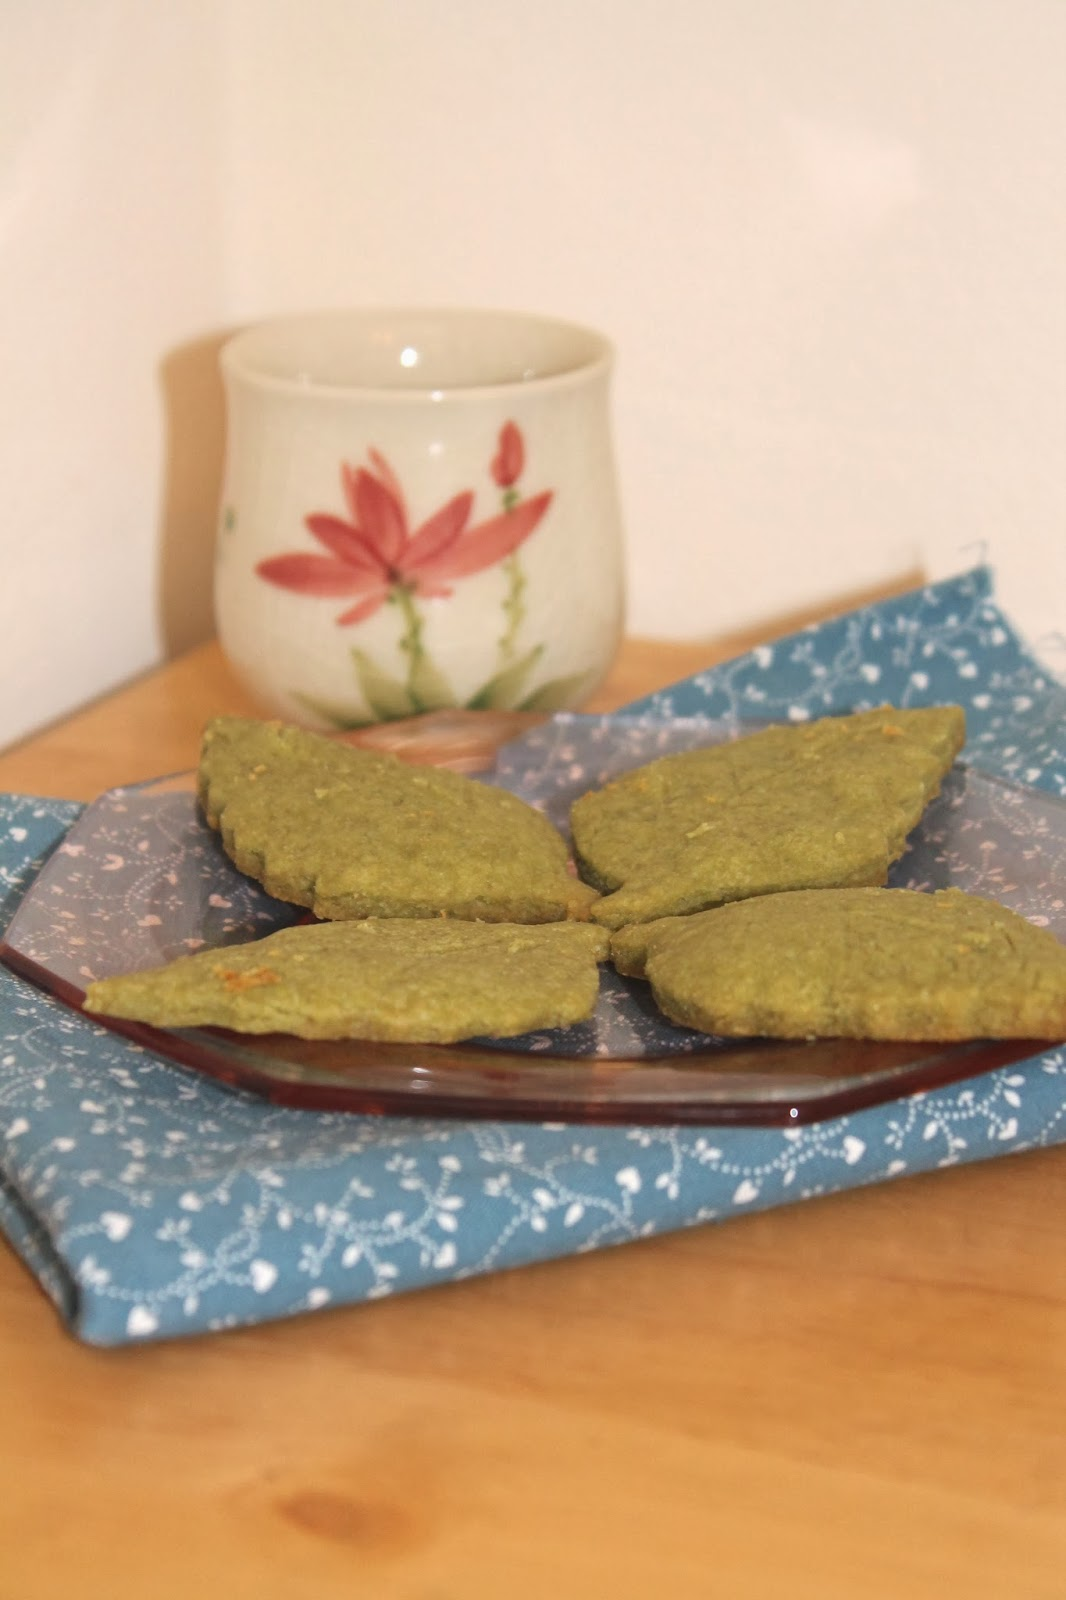 Savory Moments: Matcha tea leaf shortbread cookies